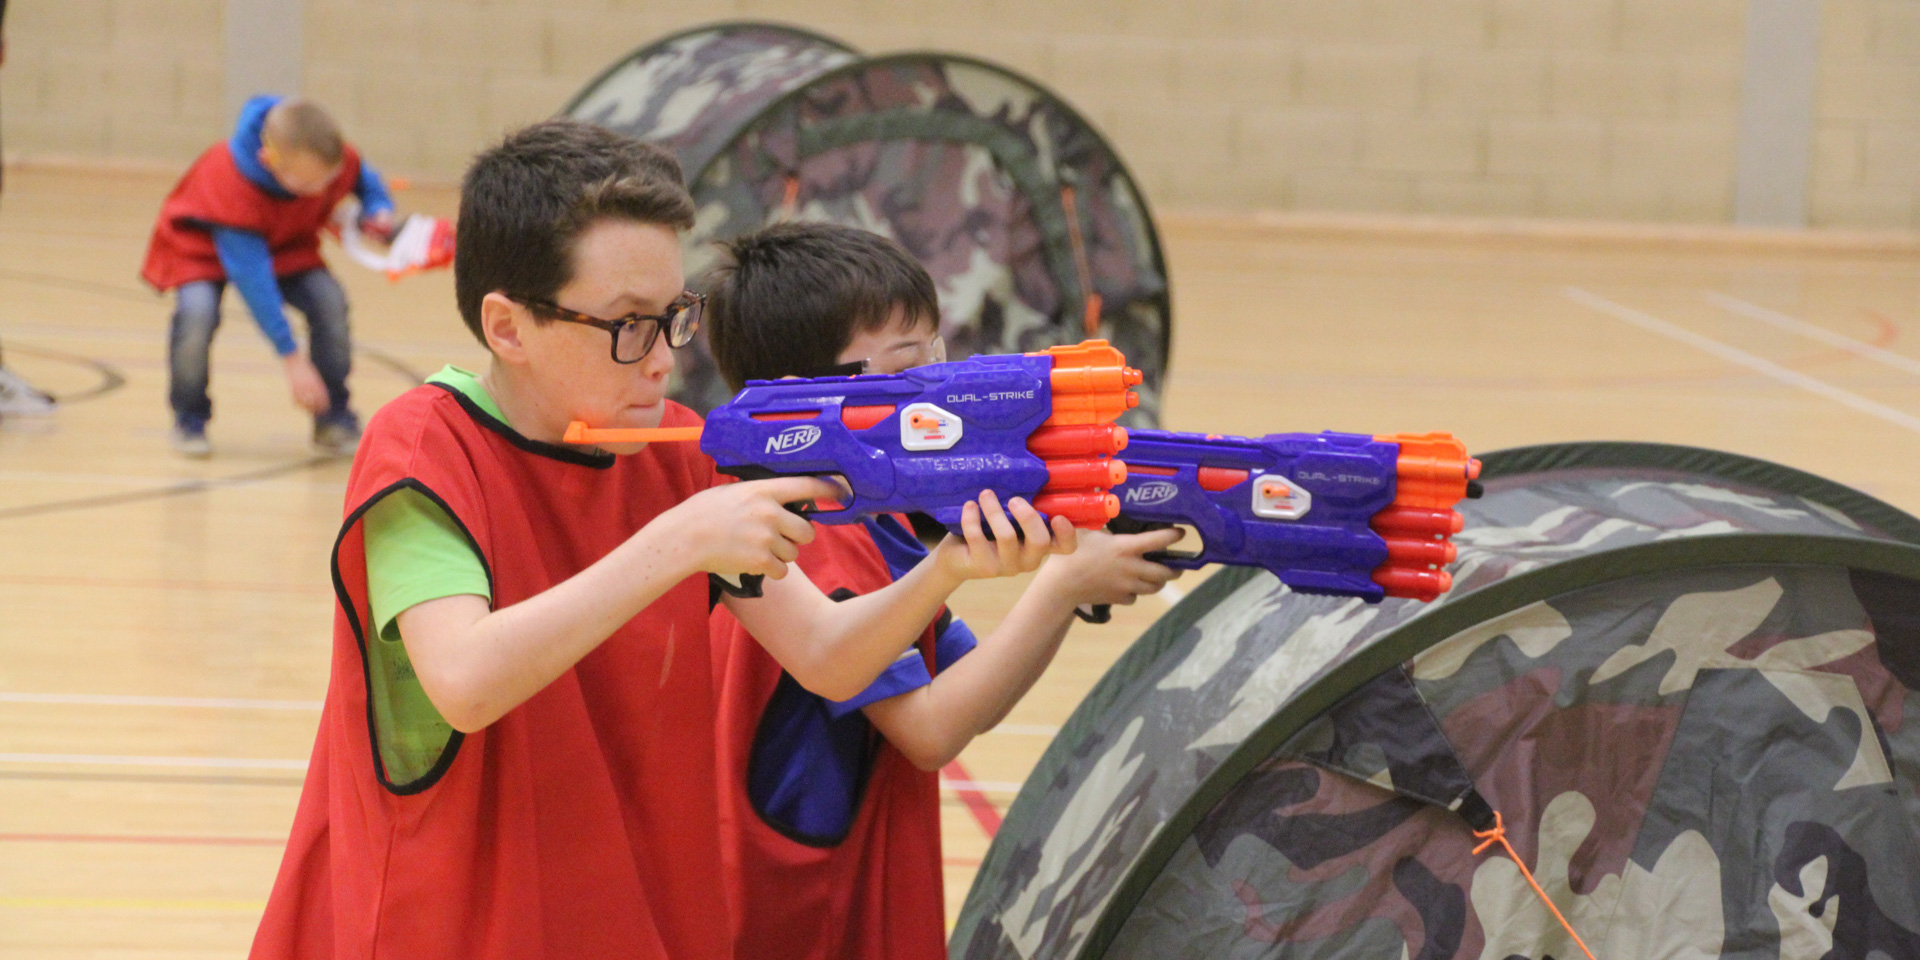 'Target practice: Nerf guns' workshop